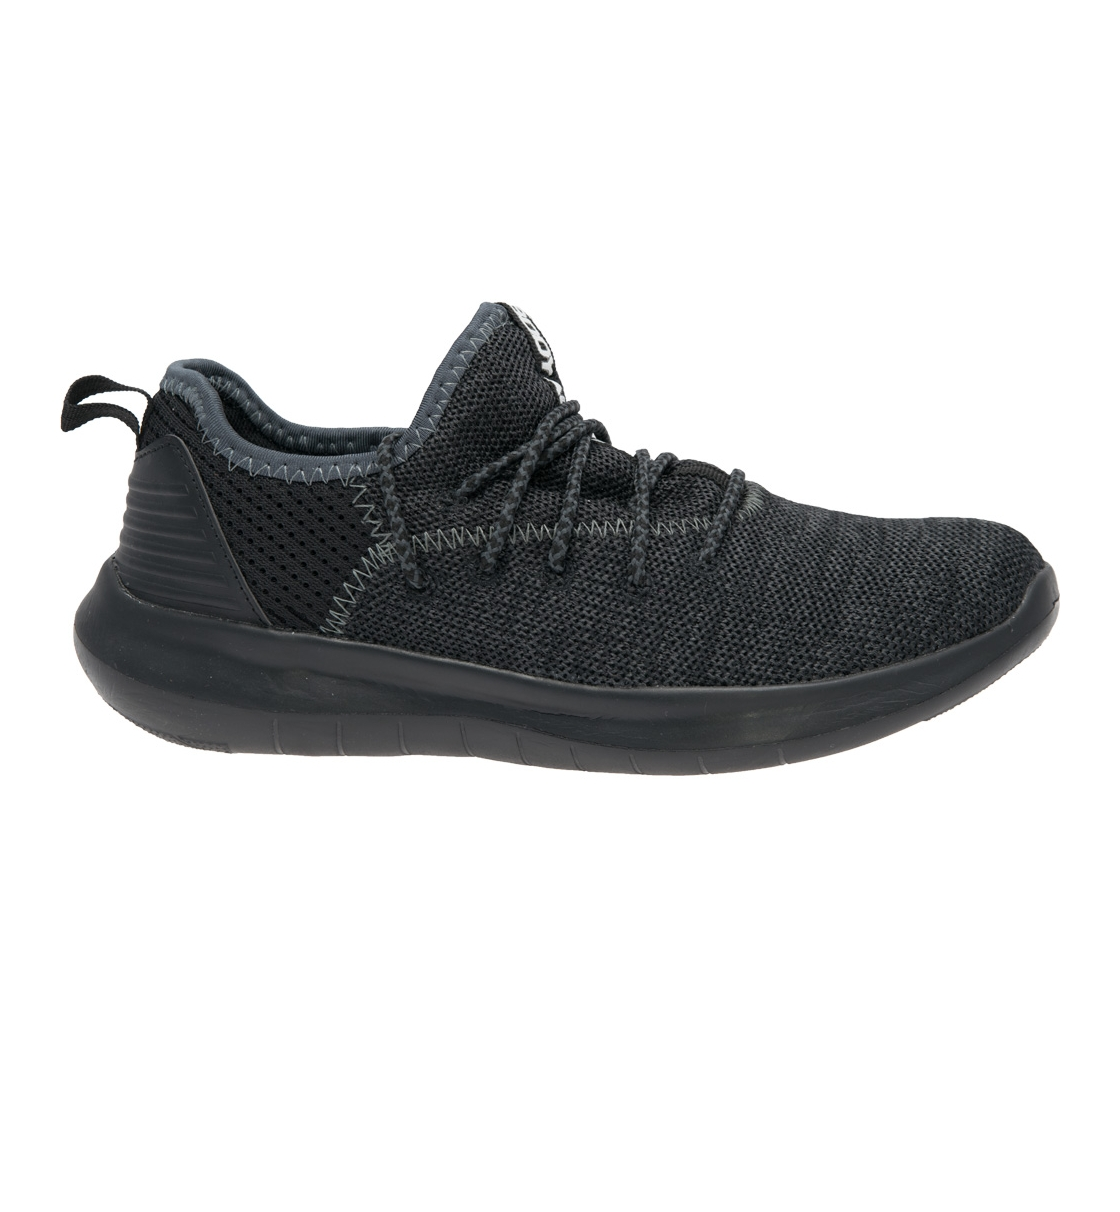 93eb7a85df Body Action Ανδρικό Παπούτσι Training Women Sport Shoes 091813 ...